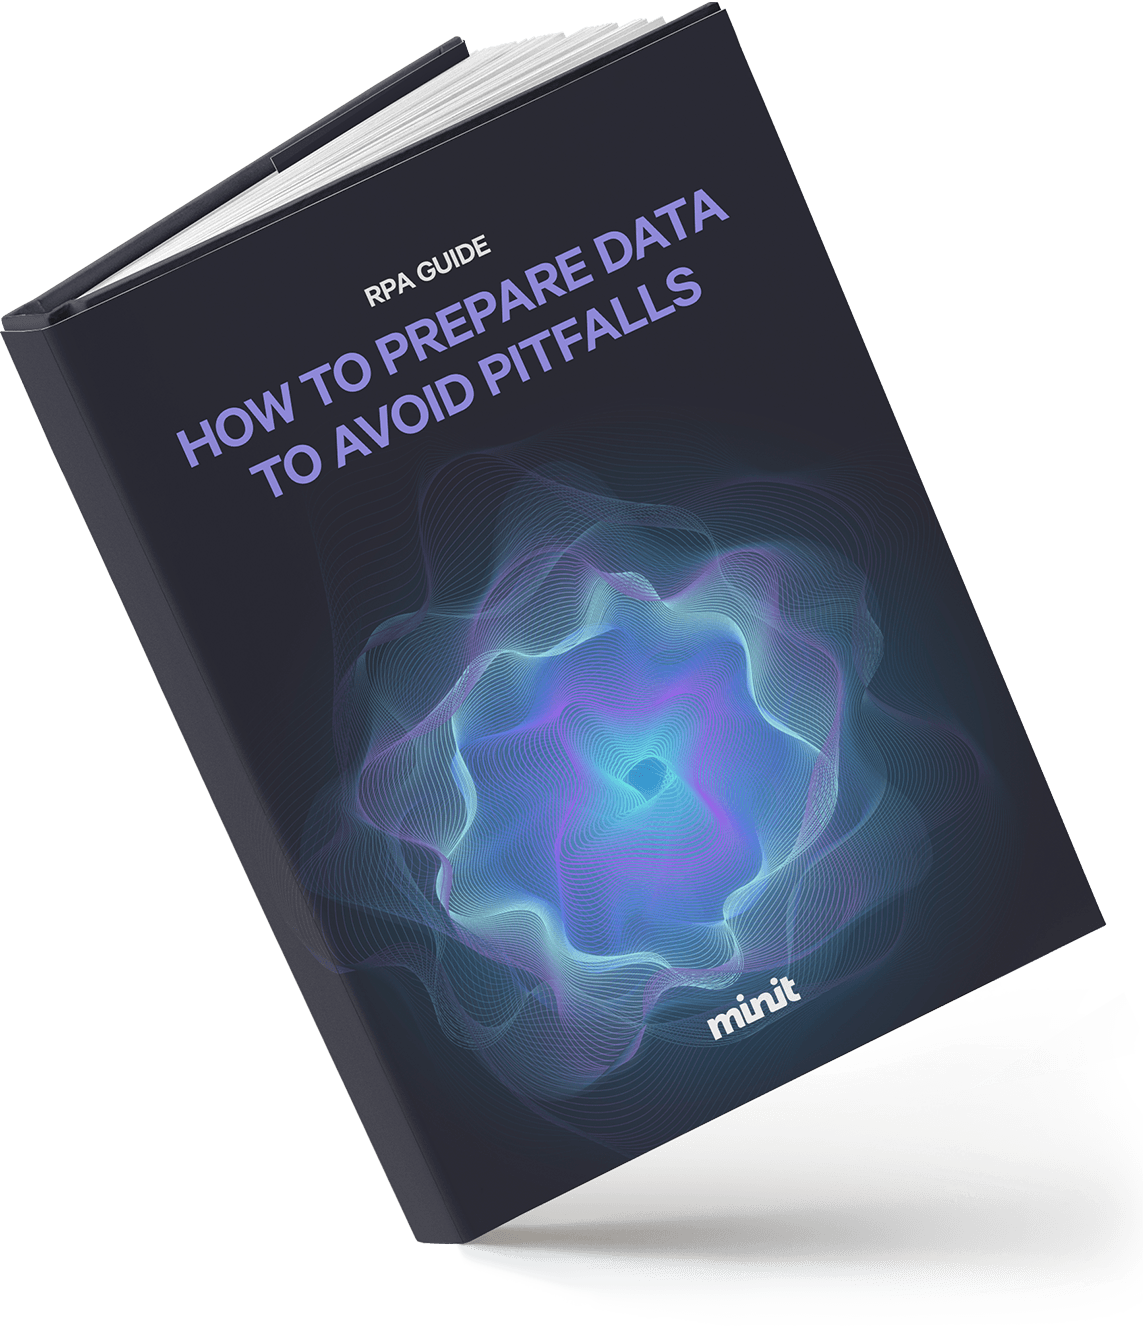 rpa-guide-how-to-prepare-data-to-avoid-pitfalls@2x